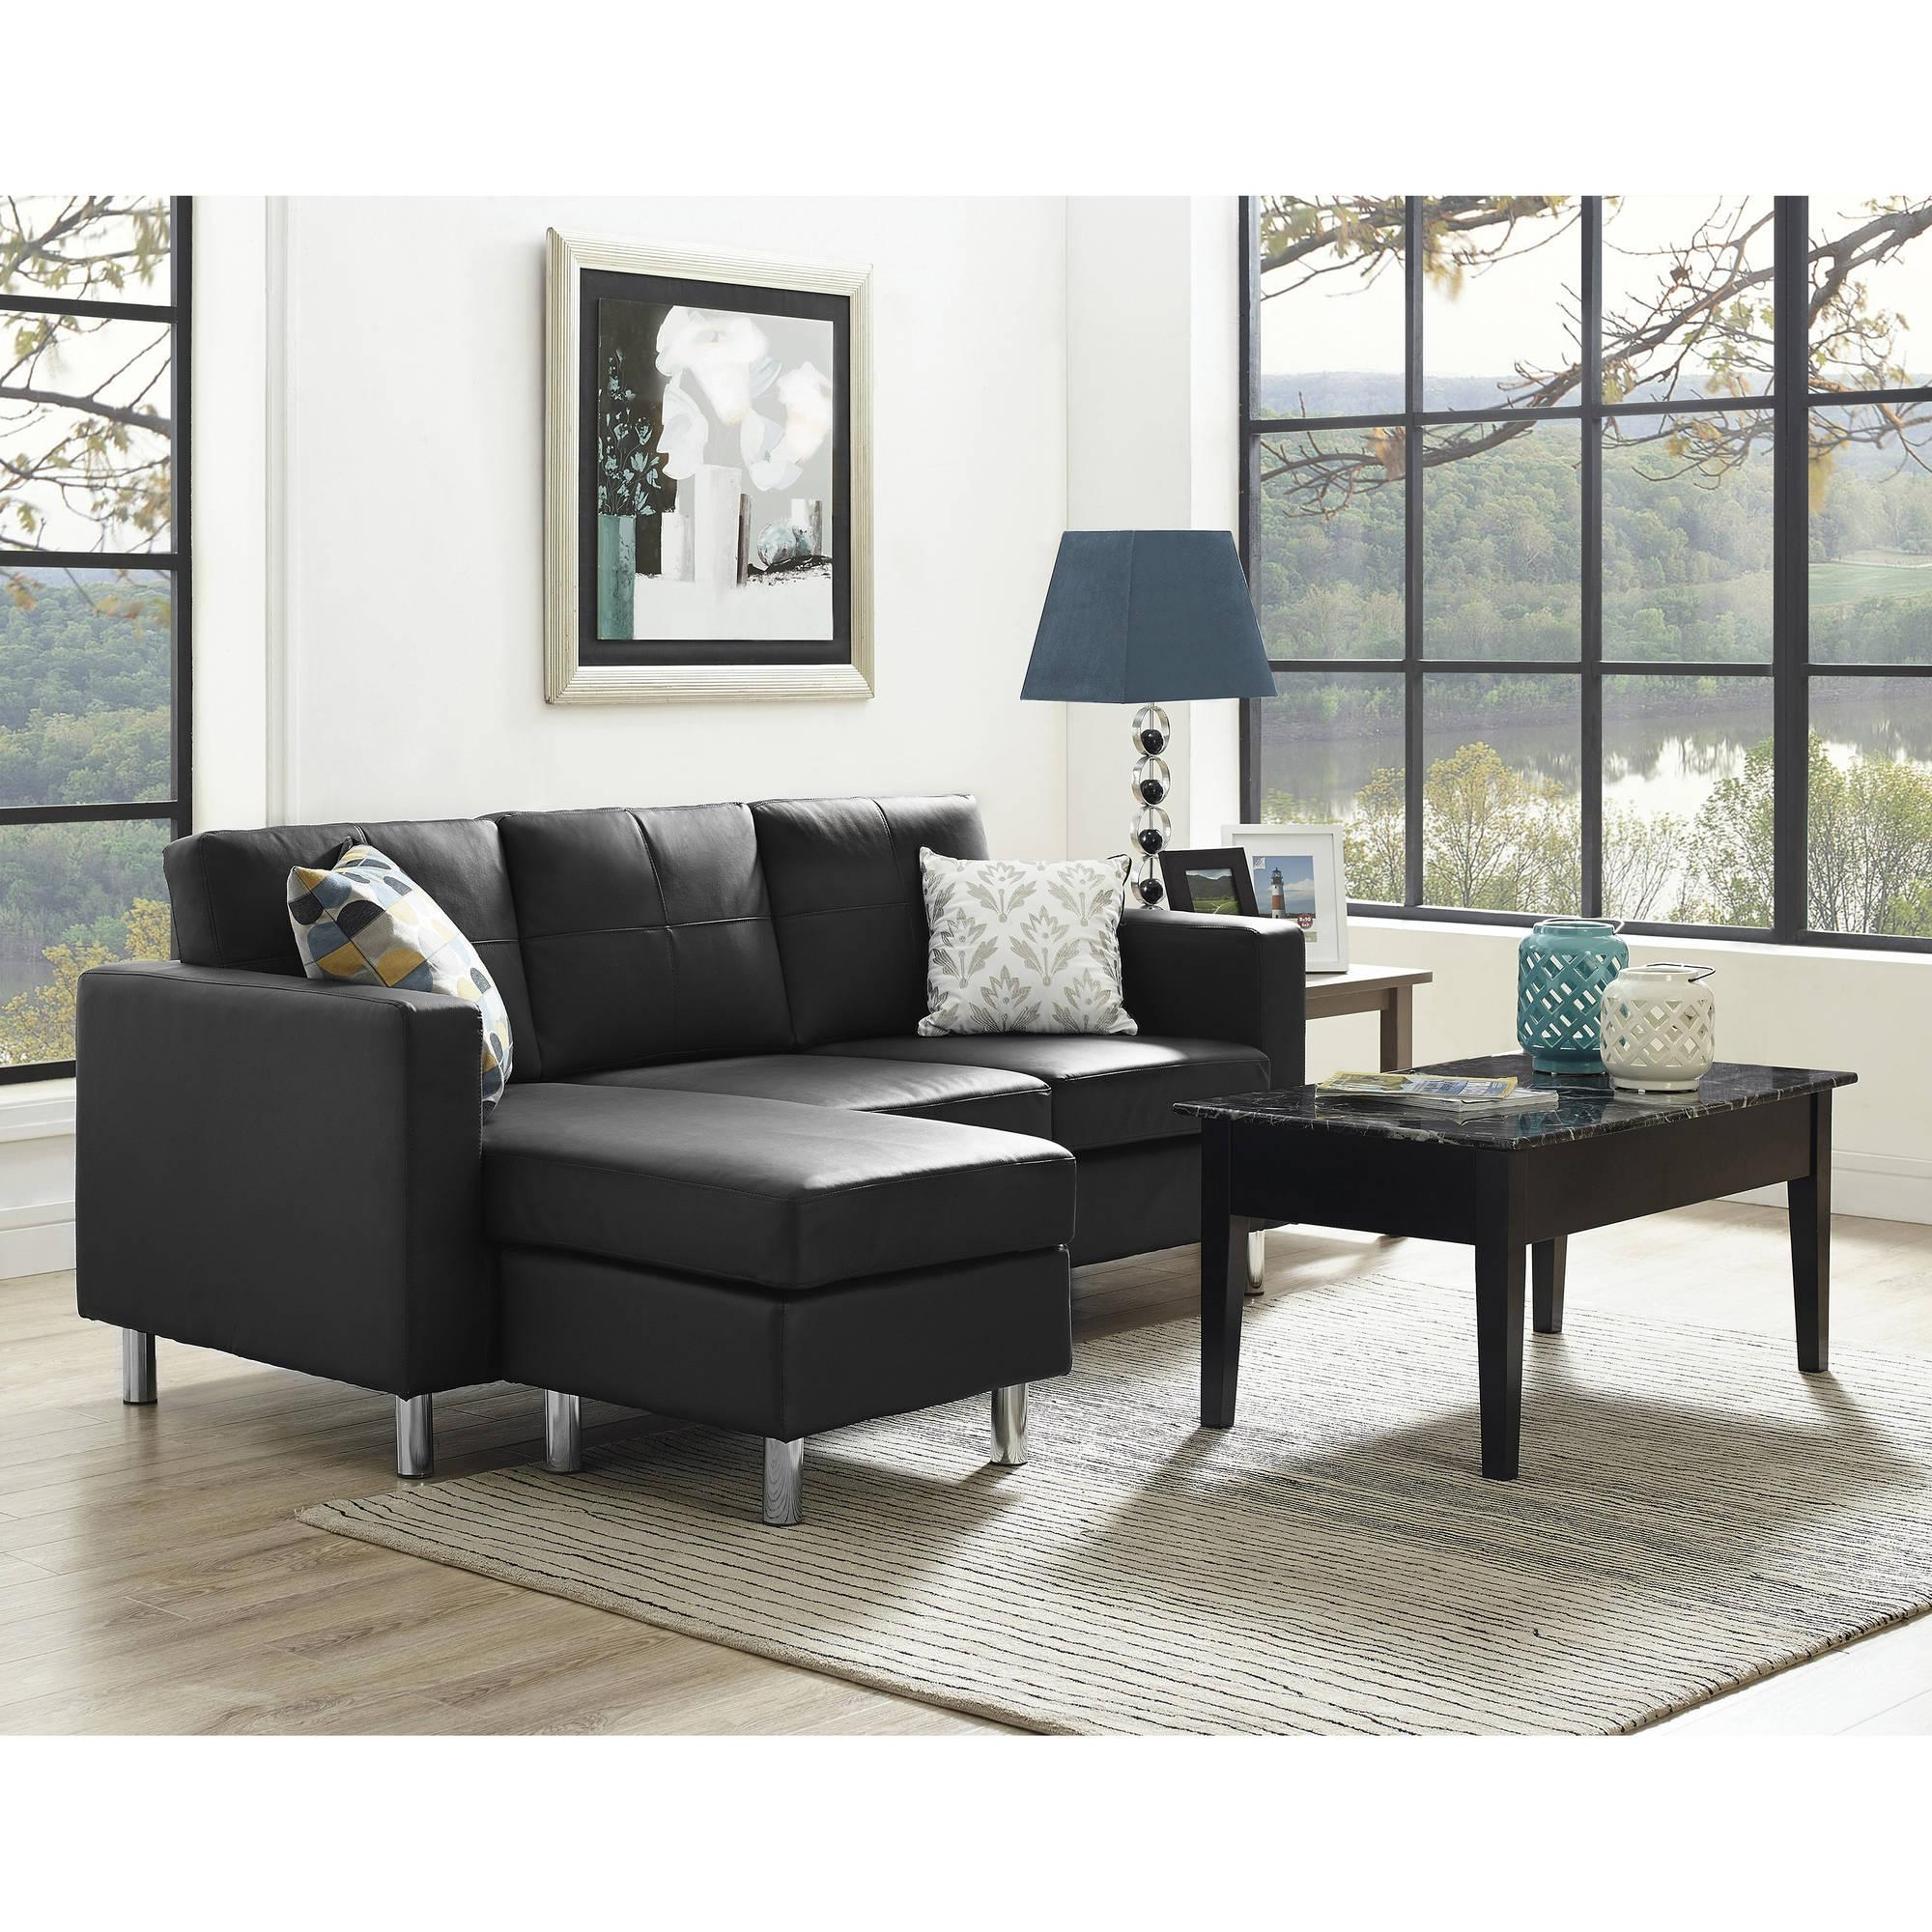 Dorel Living Small Spaces Configurable Sectional Sofa, Multiple Within Sectional Small Spaces (View 1 of 20)